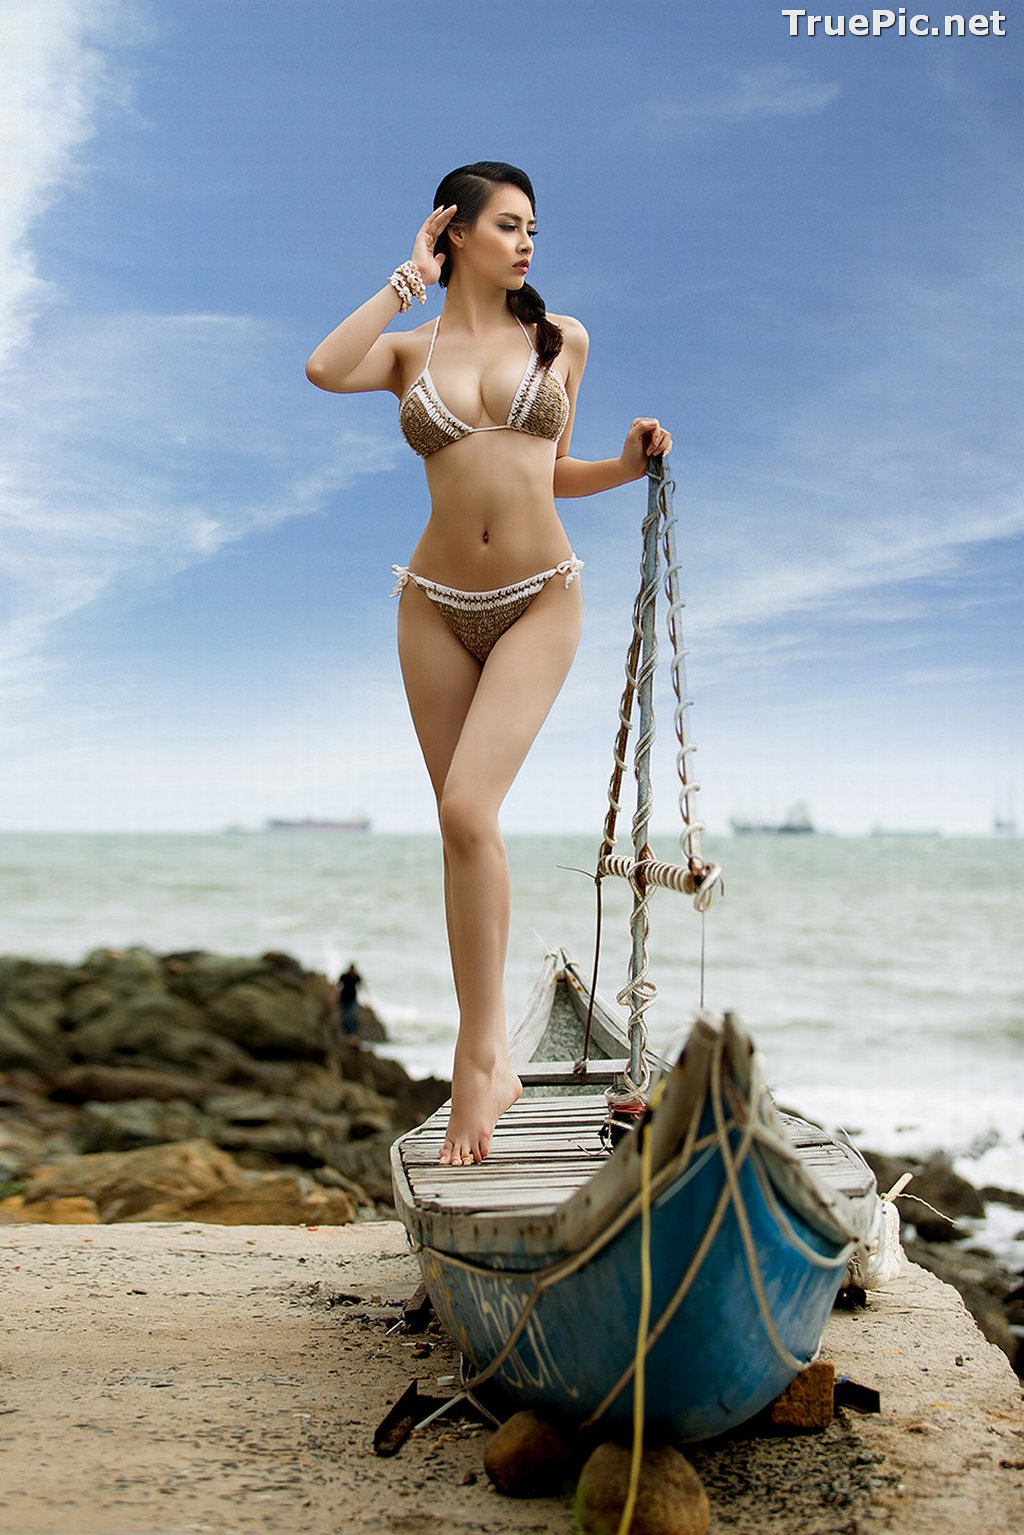 Image Vietnamese Hot Model - Thuy Trang - Wool Bikini Collection - TruePic.net - Picture-3